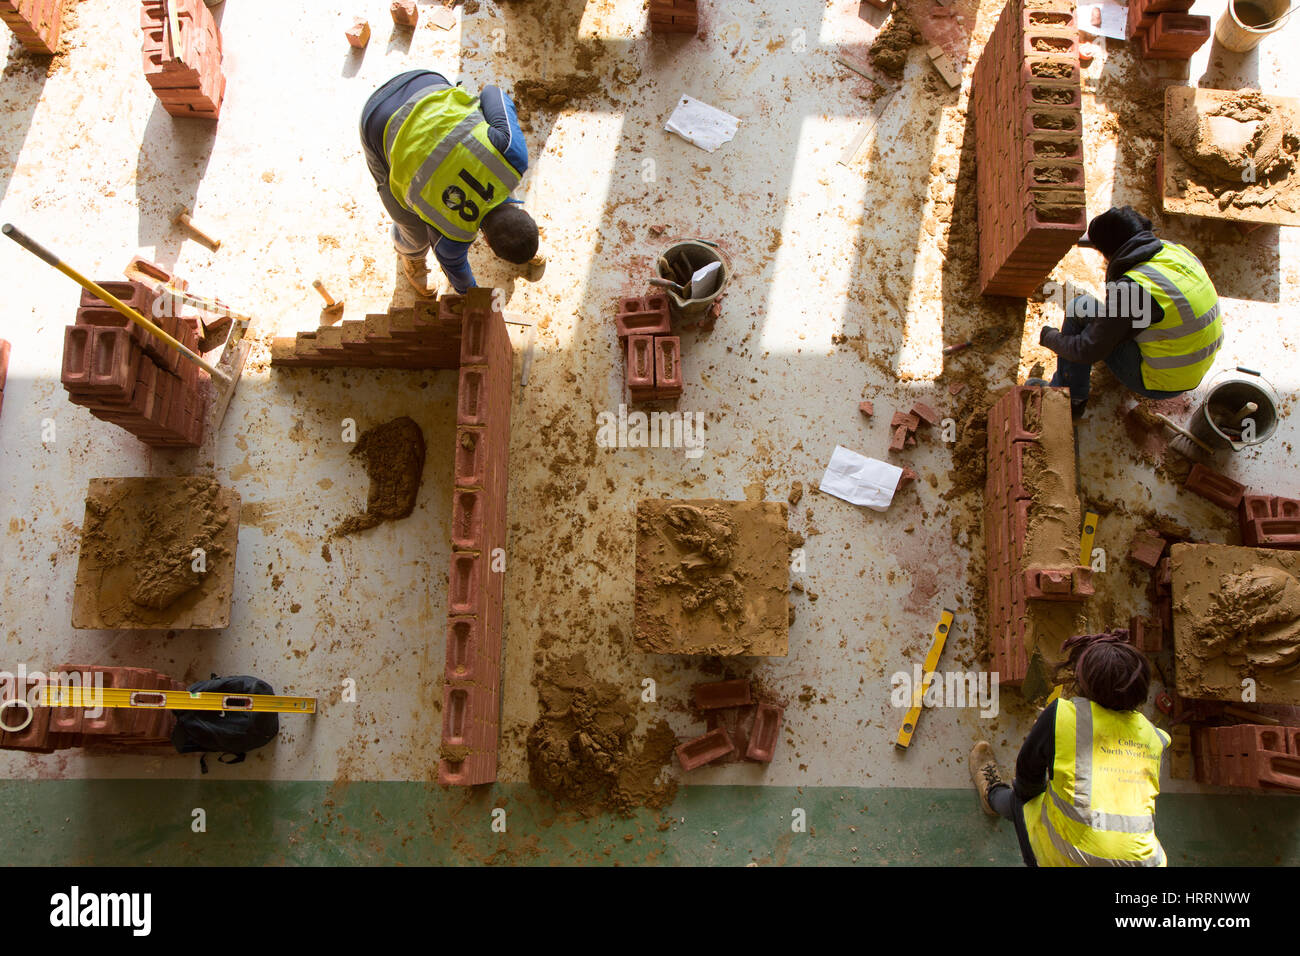 Apprentice builders learn how to construct a wall using bricks and mortar - Stock Image